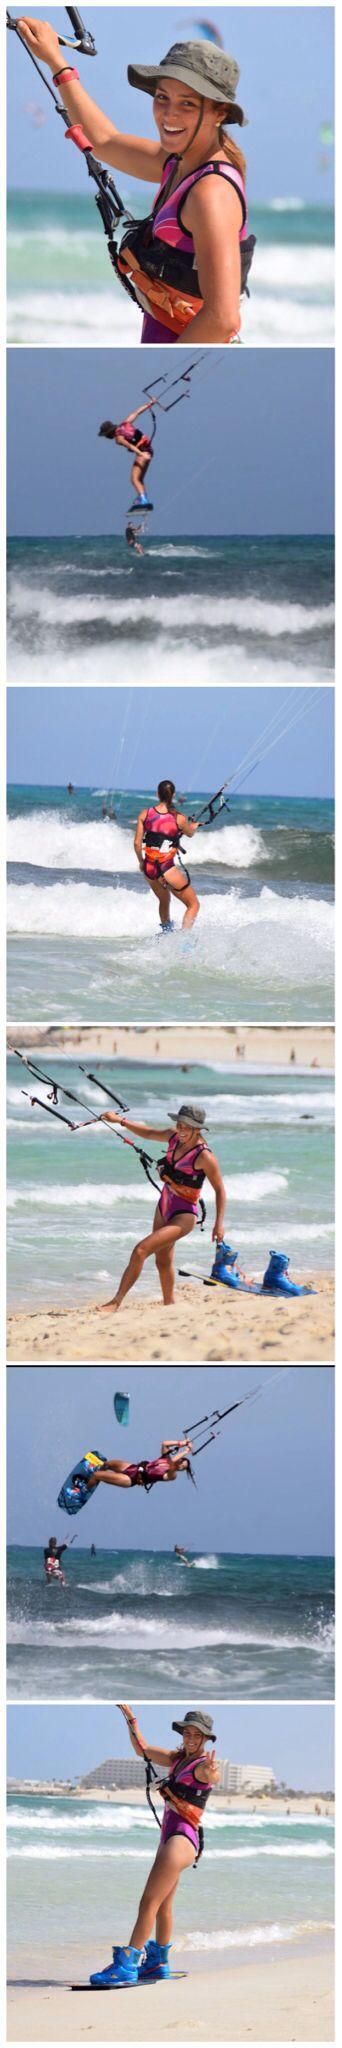 What a epic session! 20 years old wetsuit + hat+ girl jumping around= show for the whole beach